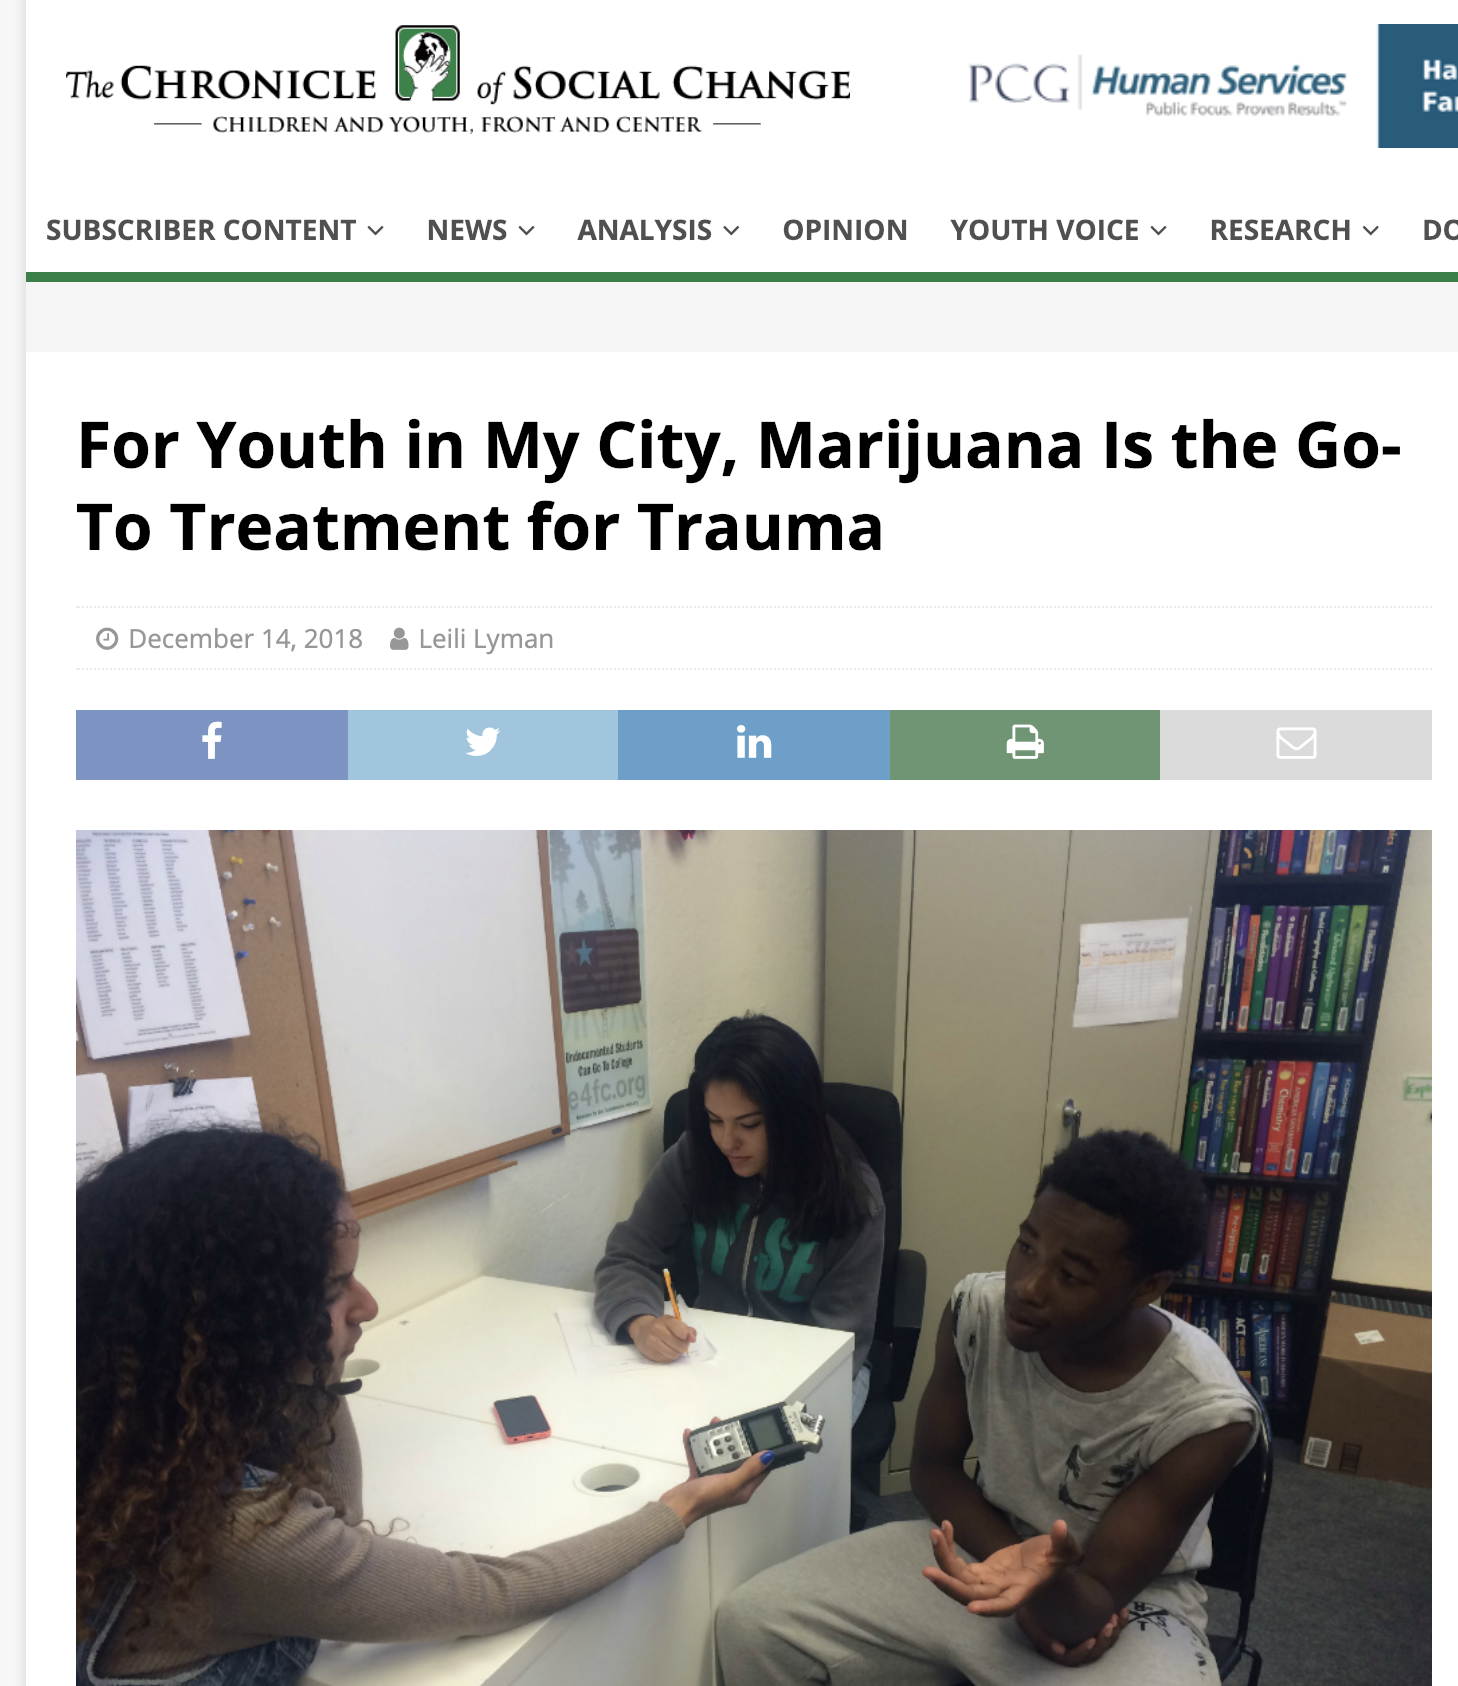 """For Youth in My City, Marijuana Is the Go-To Treatment for Trauma"" A new article by Leili Lyman"